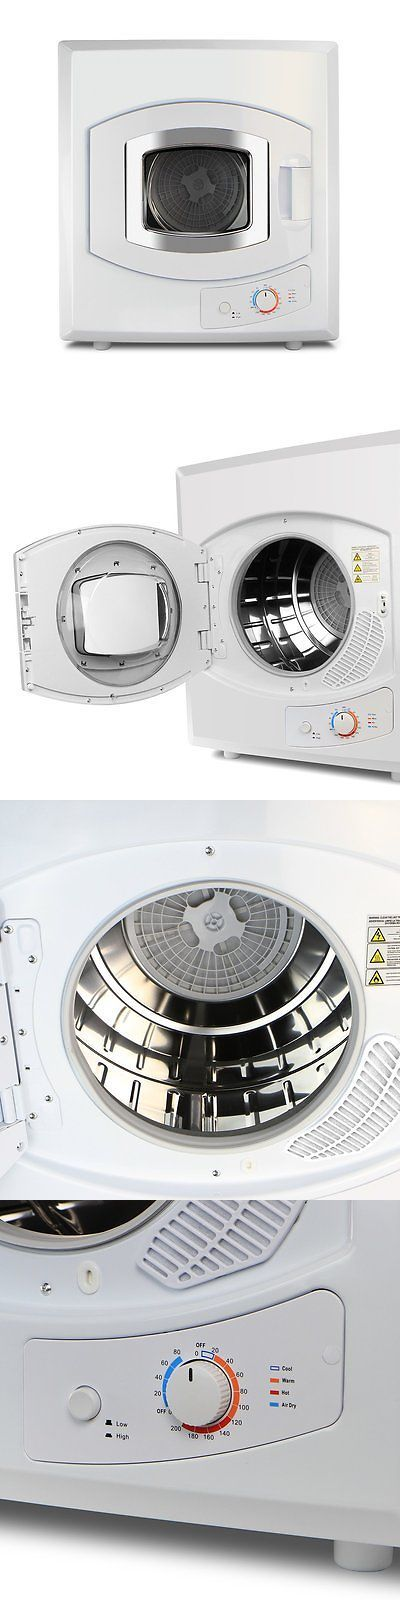 Dryers 71254: Xtremepowerus Portable Tumble Dryer Stainless Steel Drum Compact Clothes For Rv -> BUY IT NOW ONLY: $331.02 on eBay!